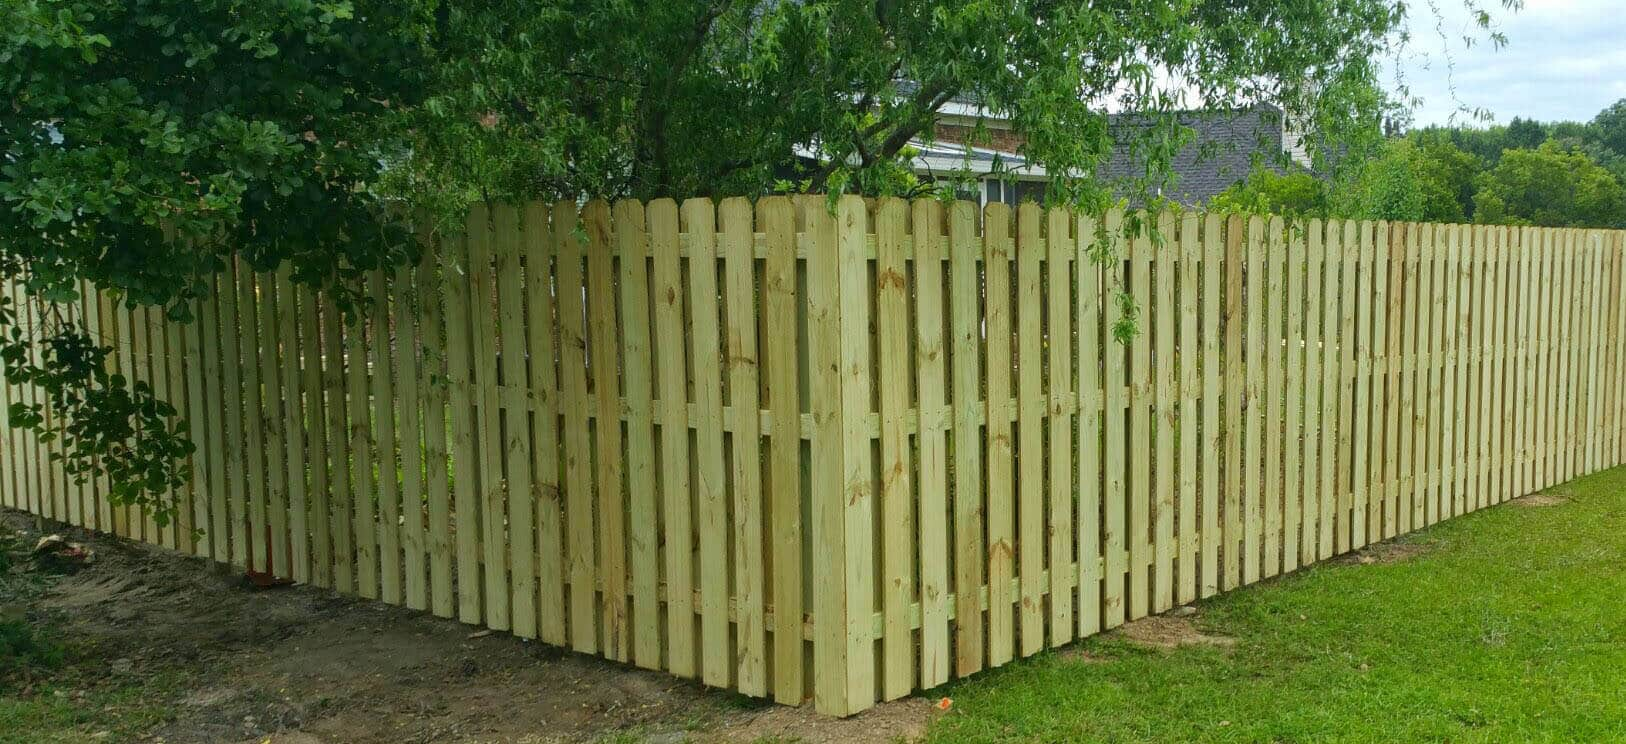 Pine Shadow Box Dog-Ear Pressure Treated Wood Fence Panel (Size: 6-ft x  8-ft)